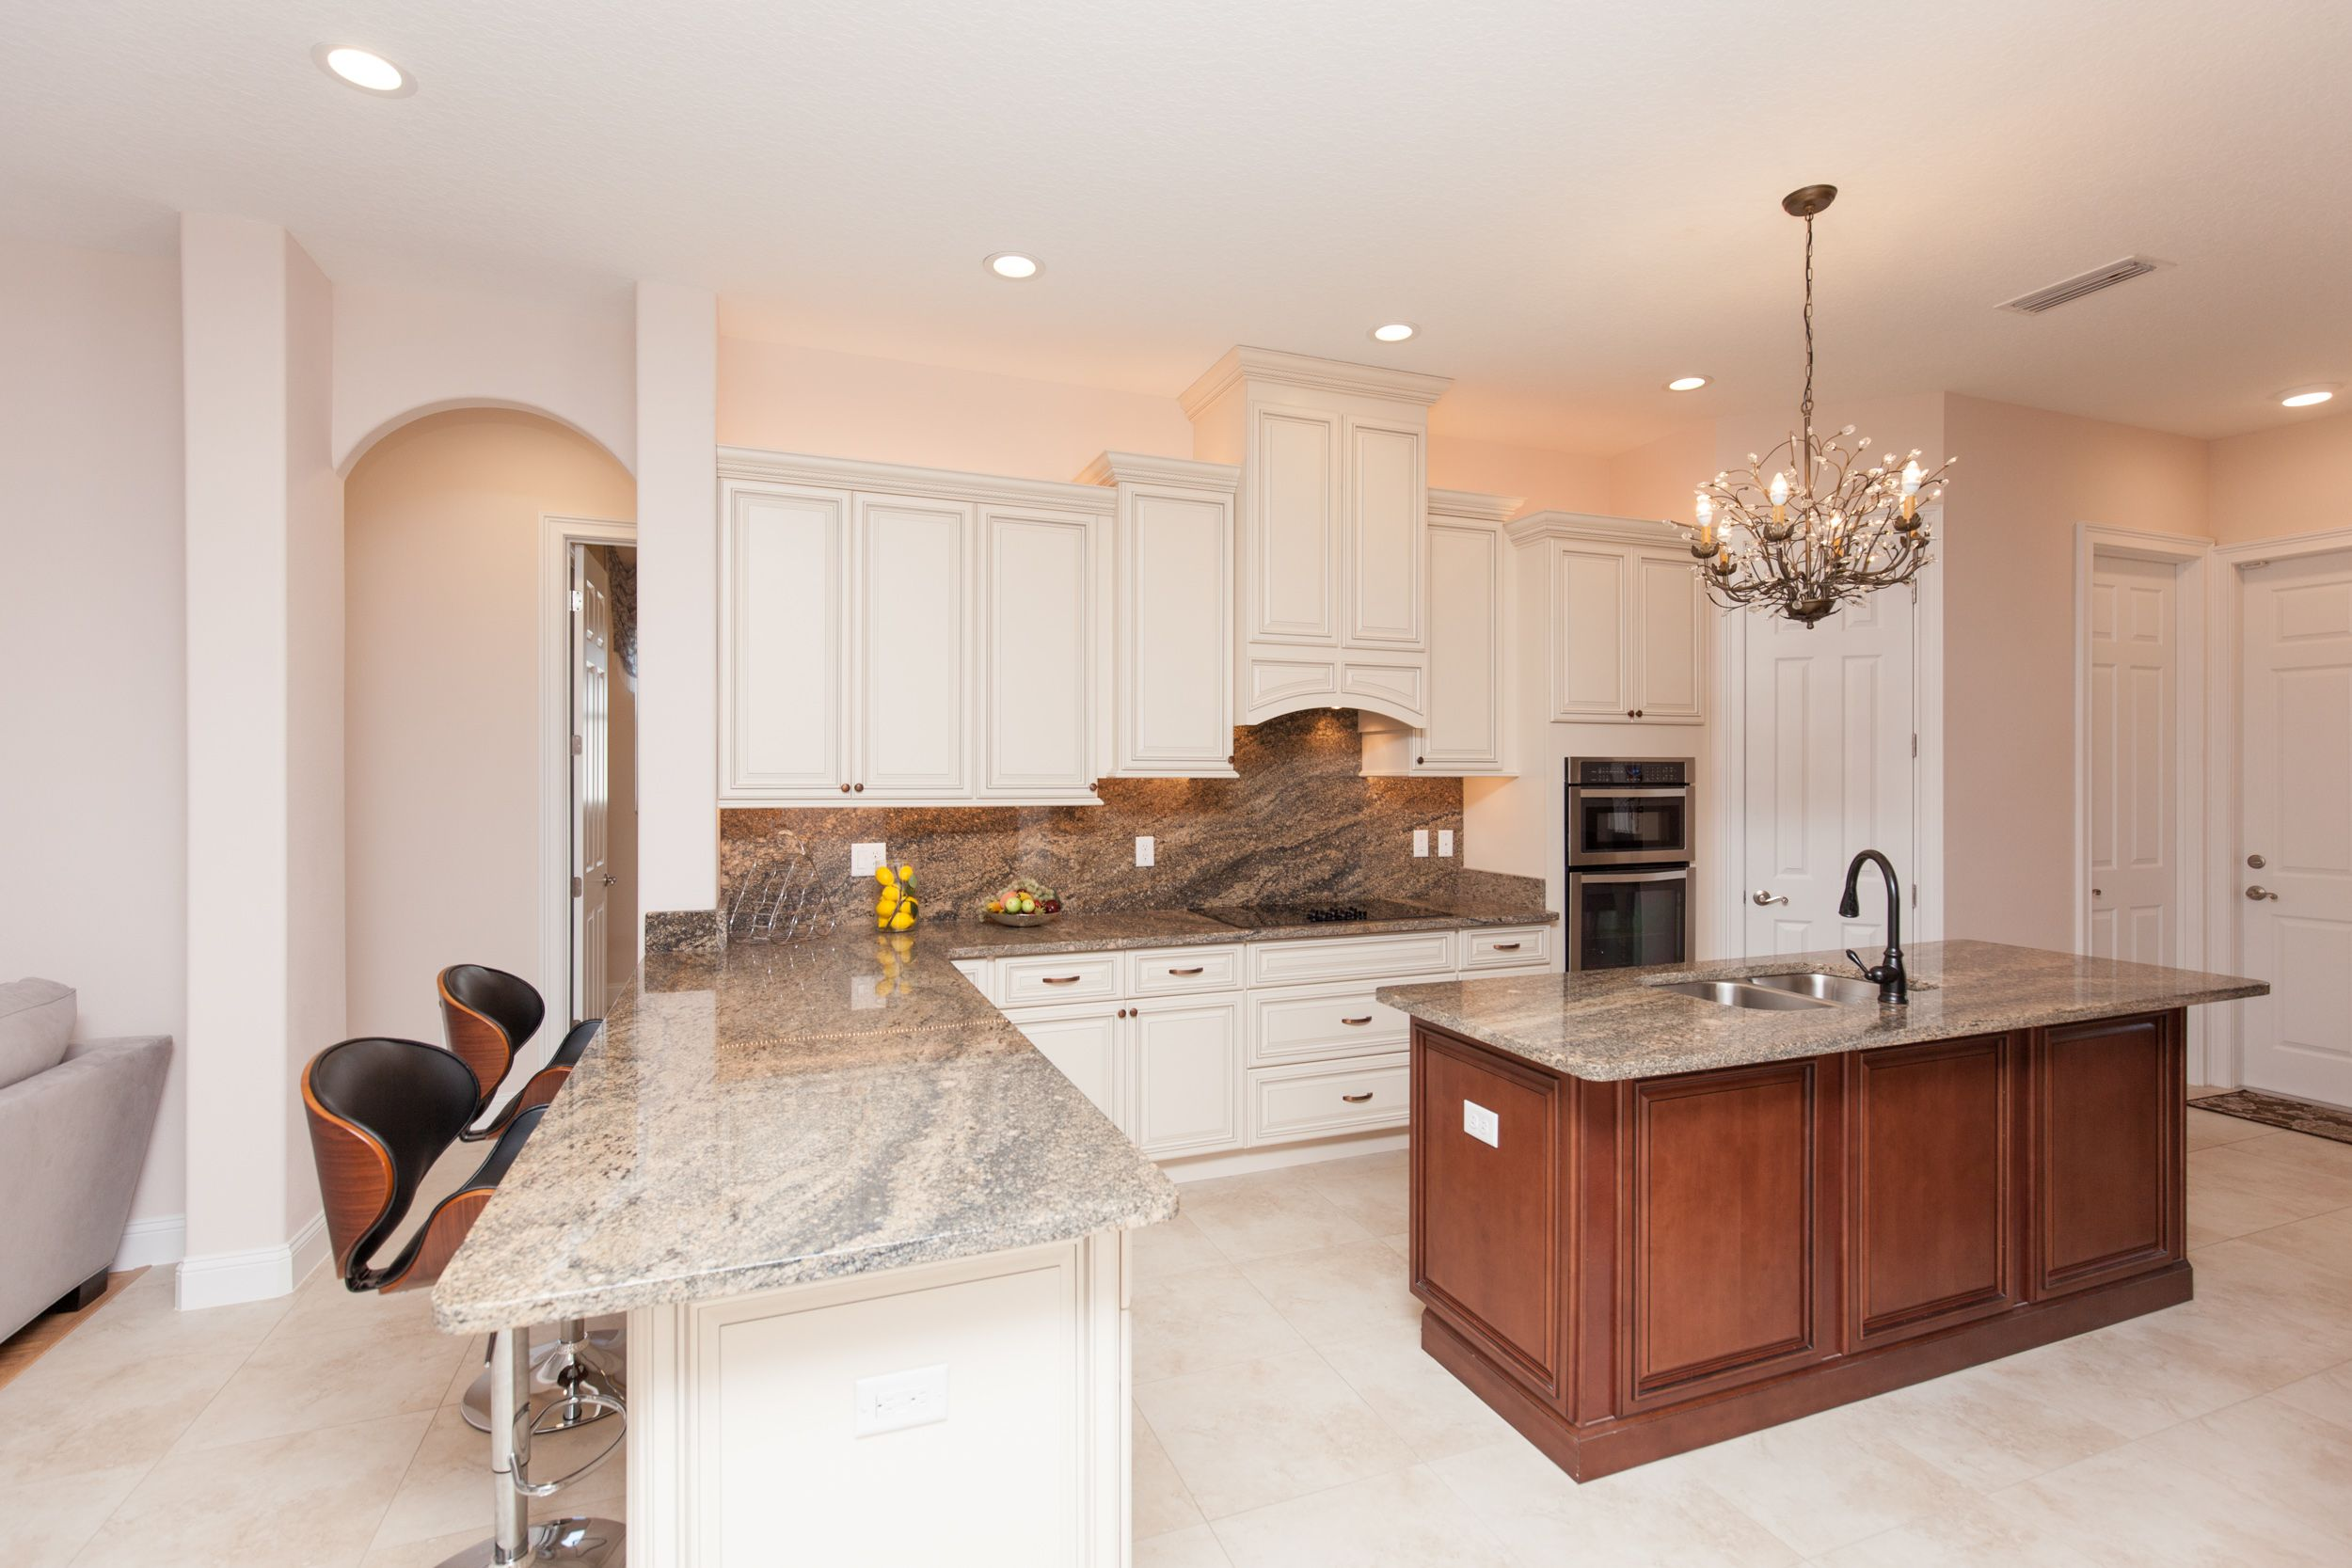 Kitchen featured in the ALISA. Certified Green home By Florida Green Construction